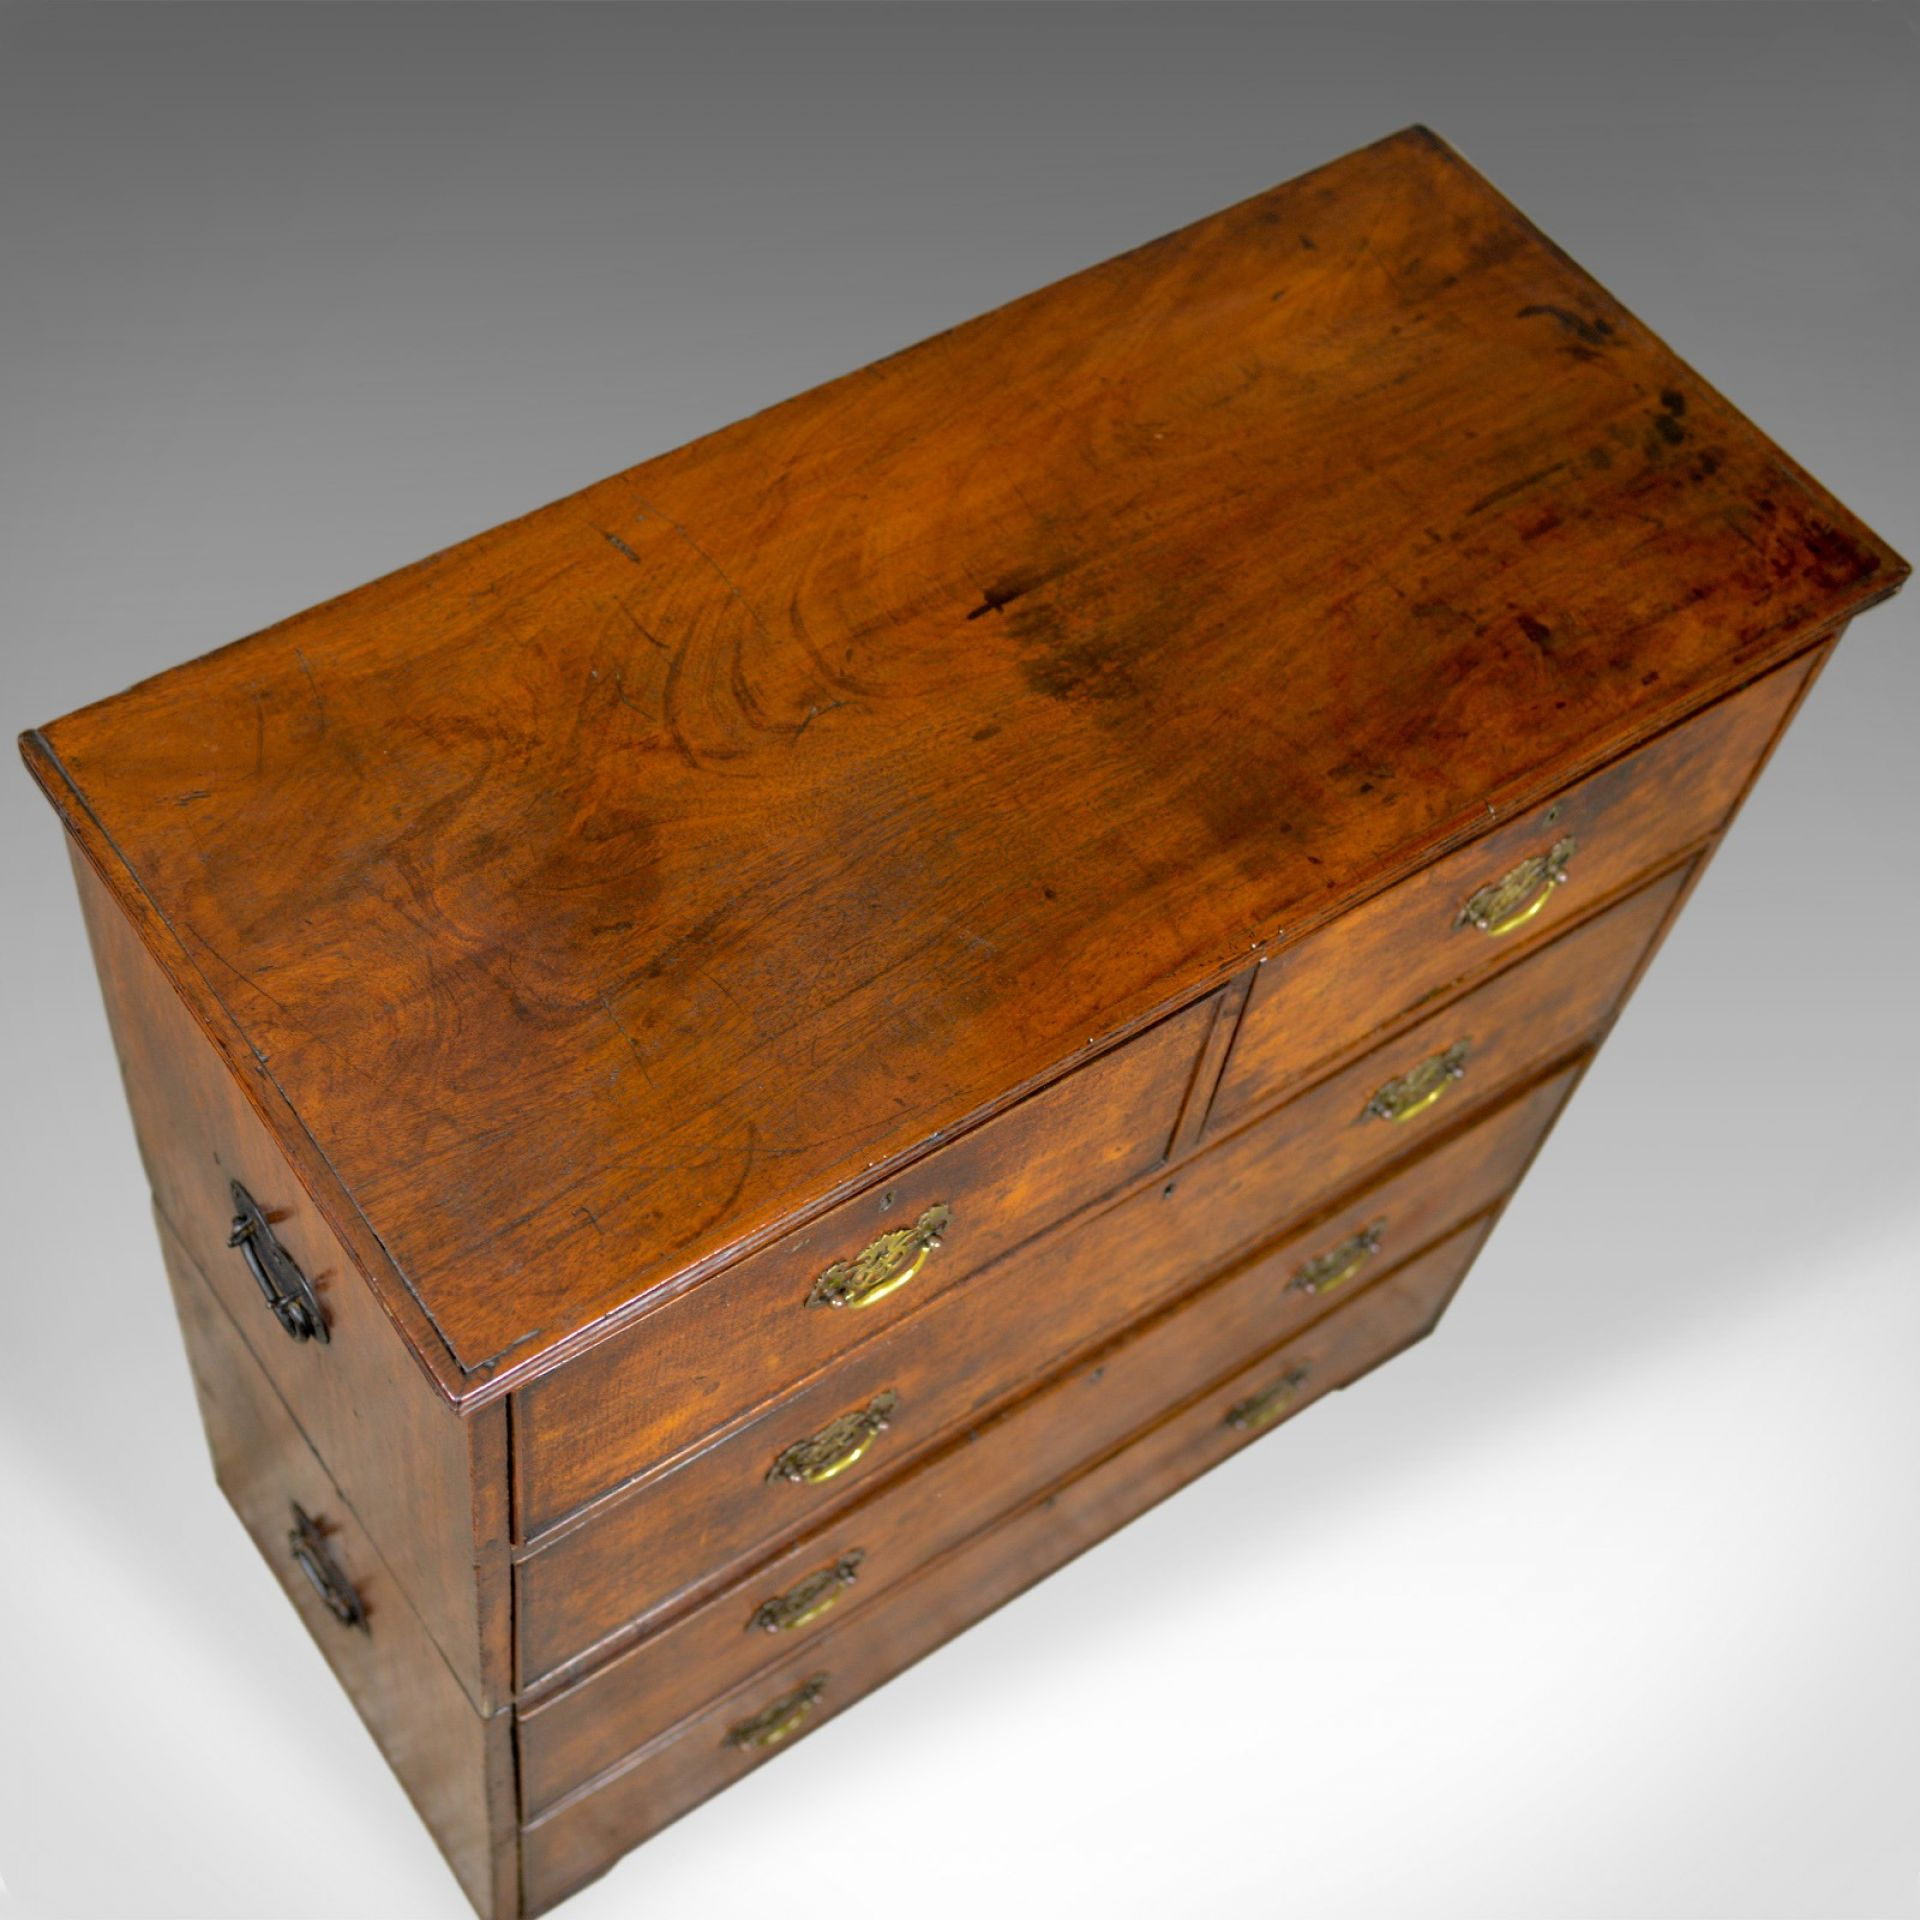 Antique Campaign Chest of Drawers, English, Late Georgian, Walnut, Circa 1780